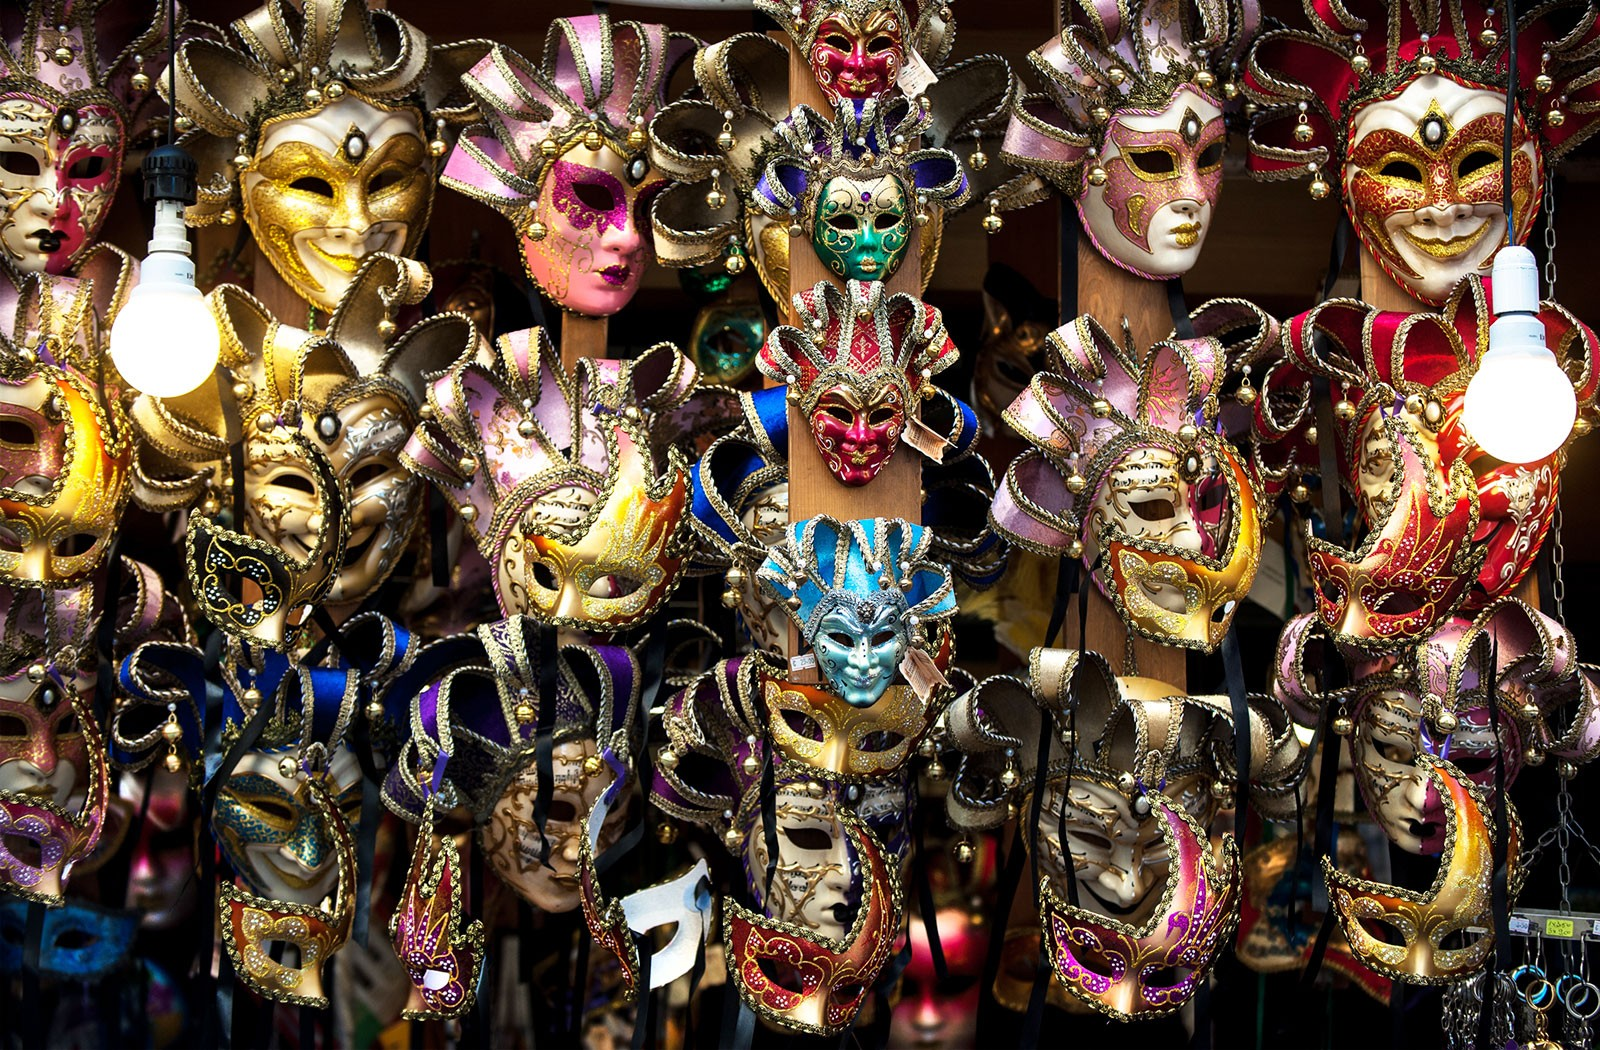 Venice-italy-a-shop-full-of-traditional-masks-and-souvenirs-in-a-small-street